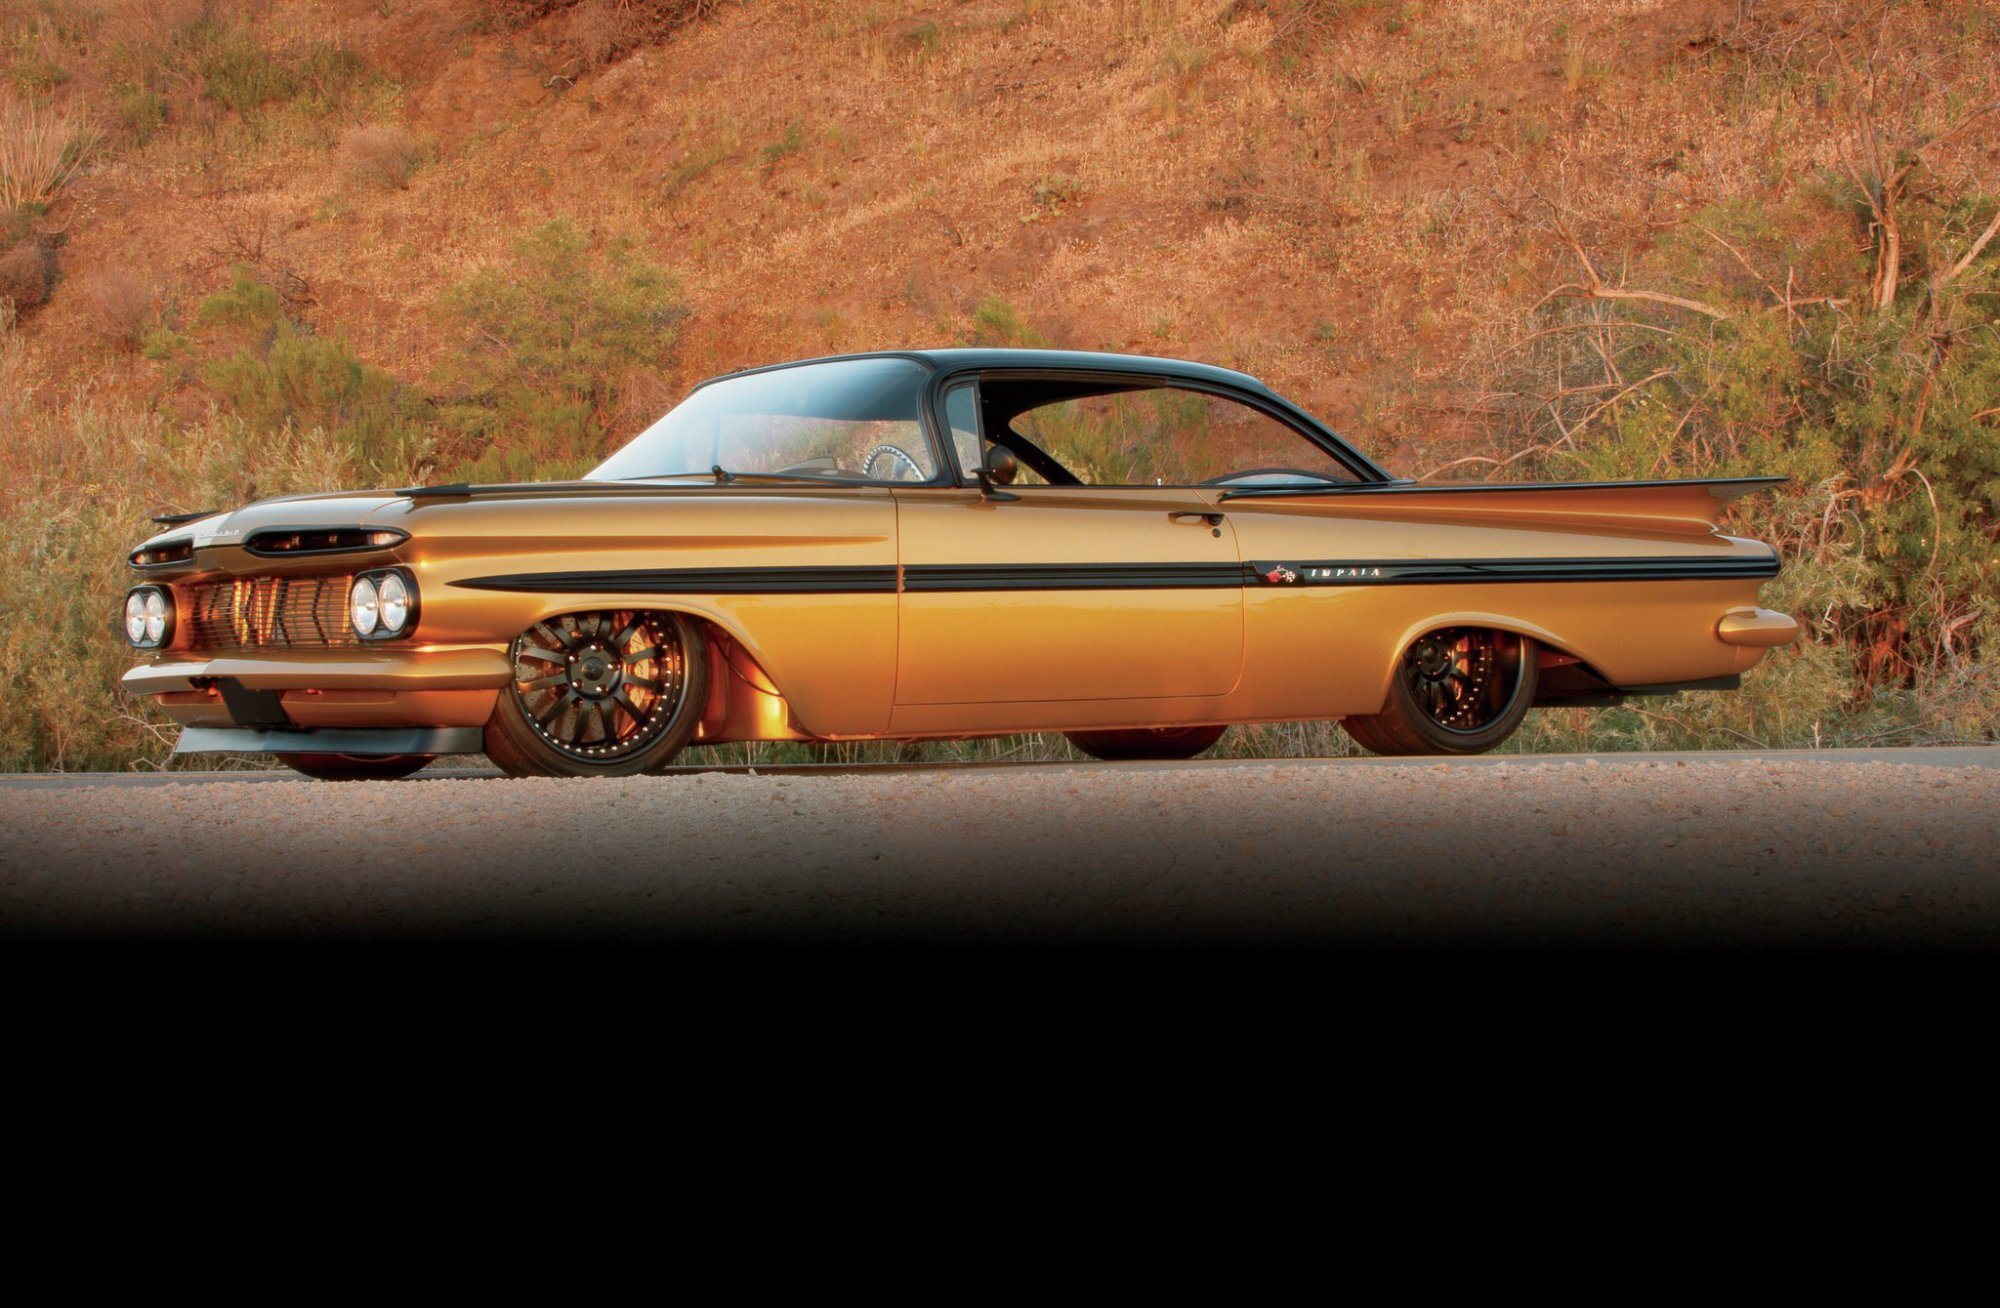 hight resolution of 1959 chevrolet impala driver side